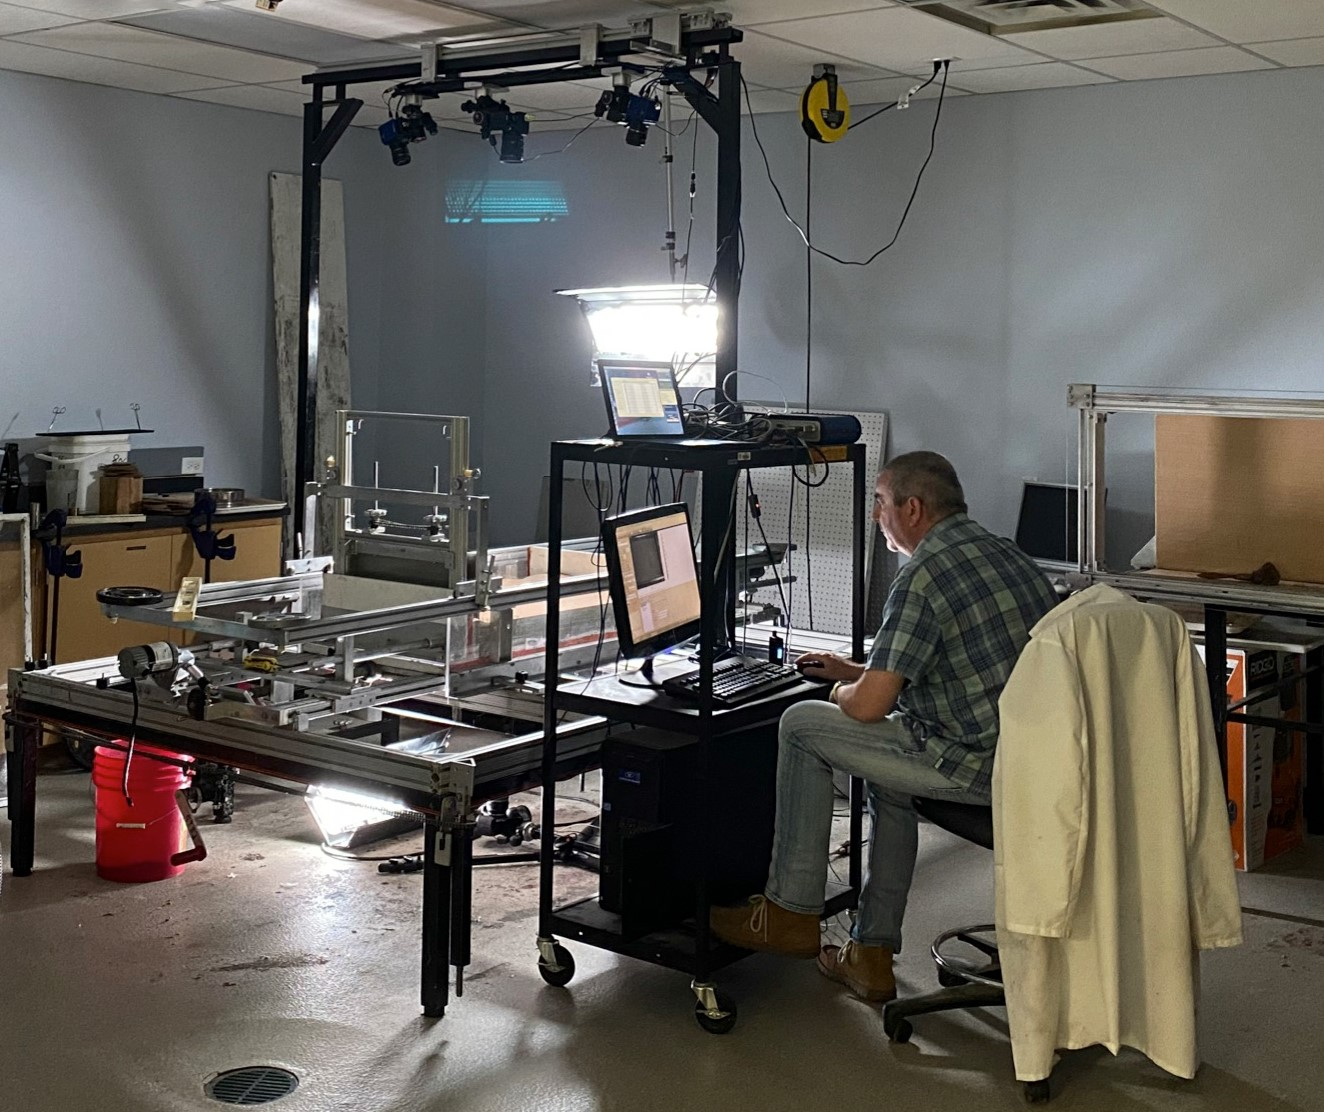 Tim Dooley completing work in the salt tectonics modeling laboratory while maintaining social distancing.